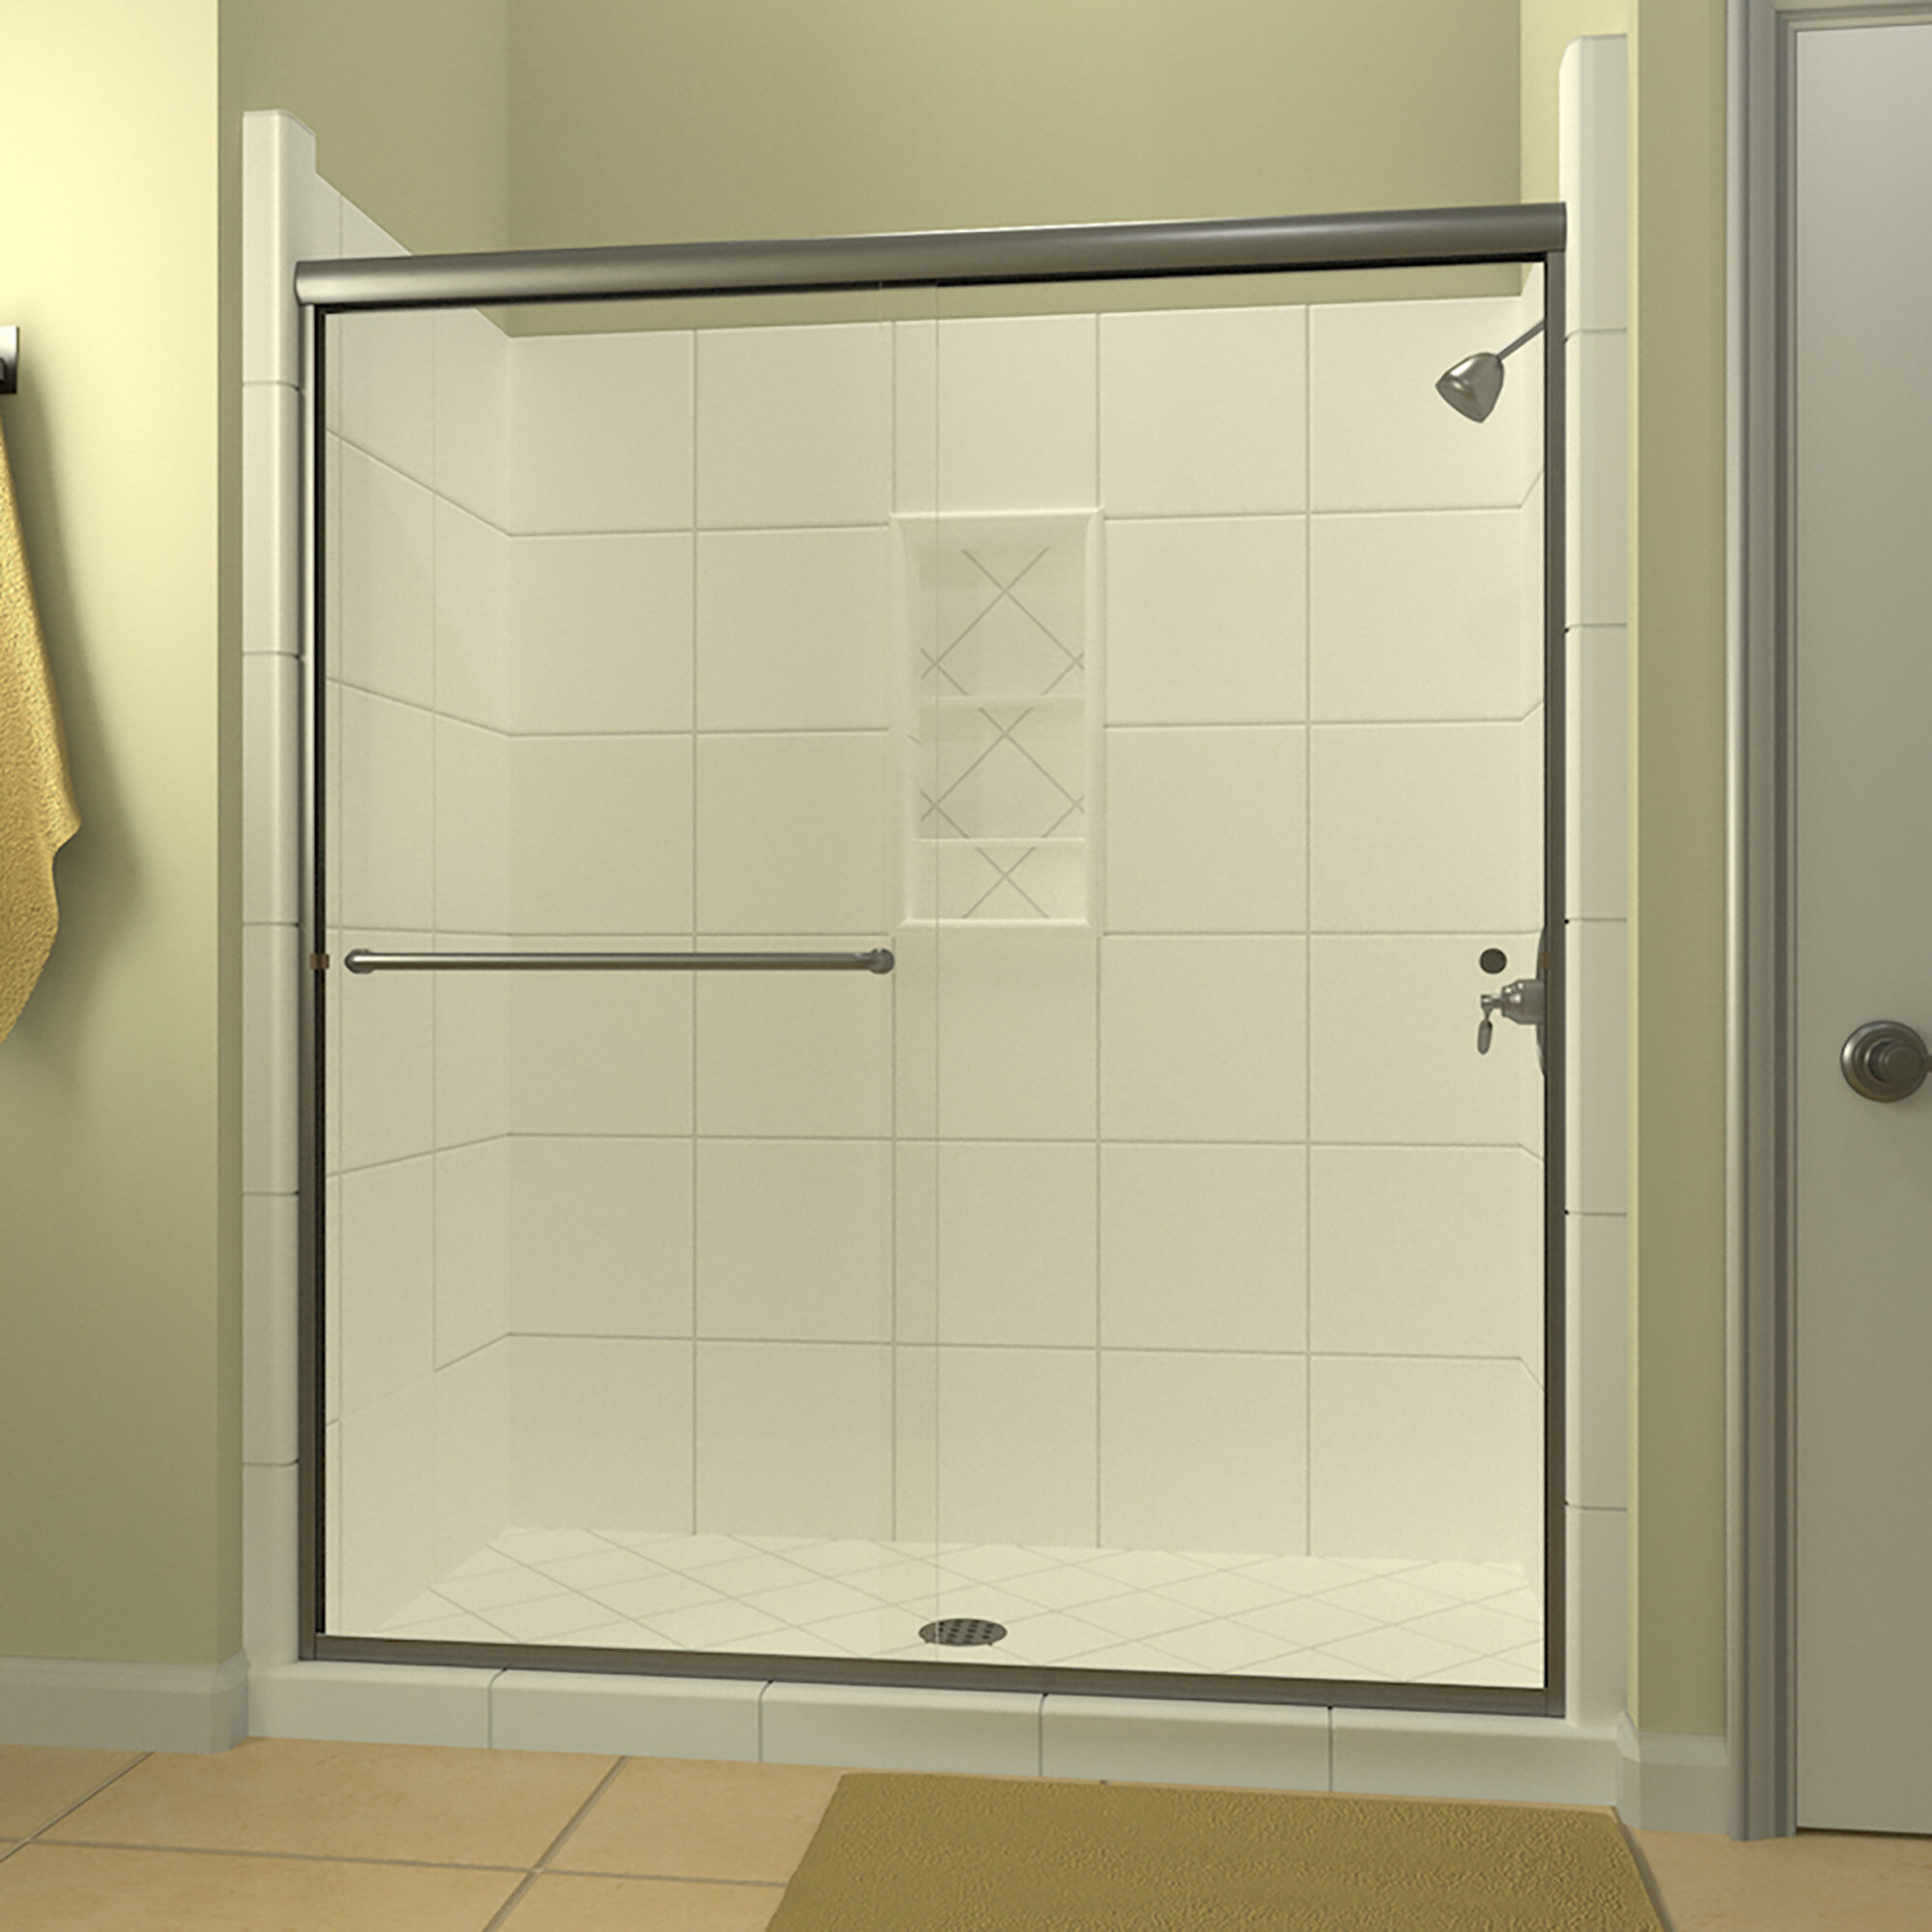 Details About Ese 72 X 70 38 Bypass Semi Frameless Shower Door Brushed Nickel Right Opening